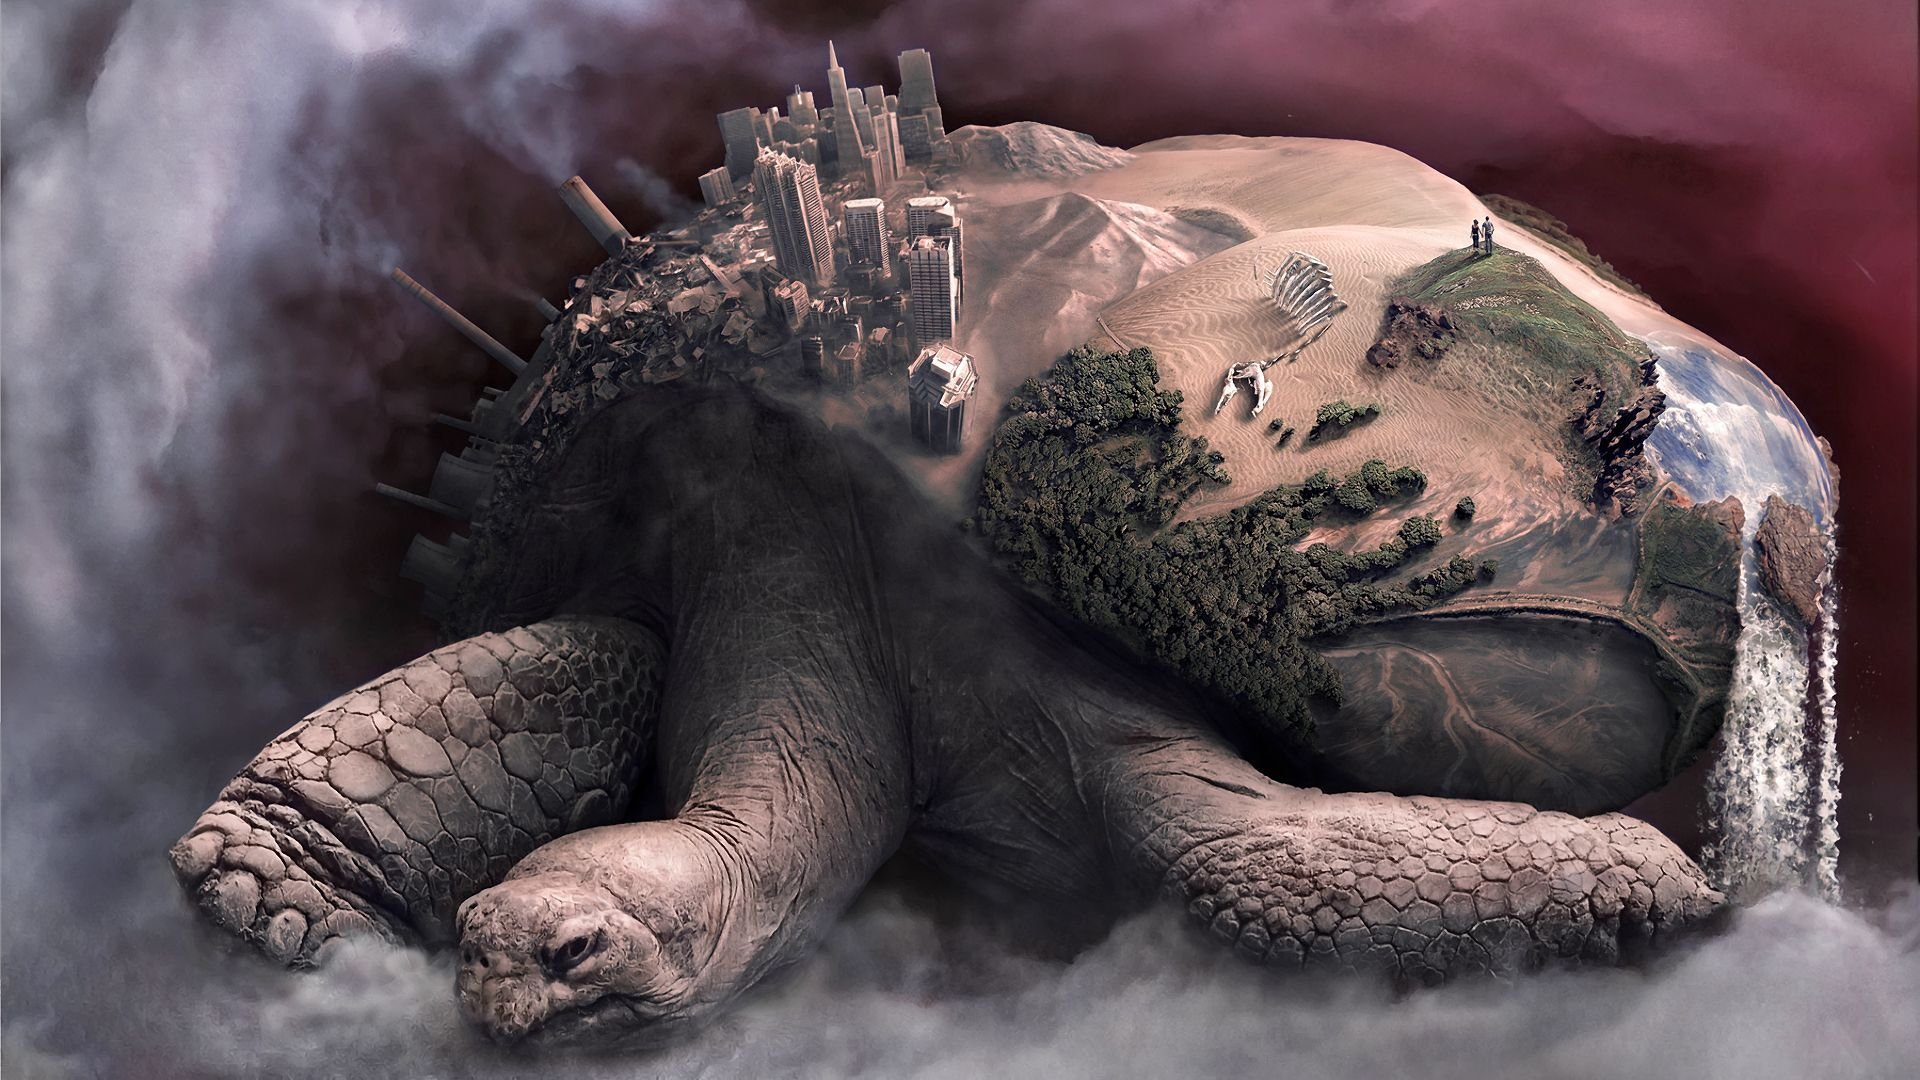 earth-turtle-city-desert.jpg